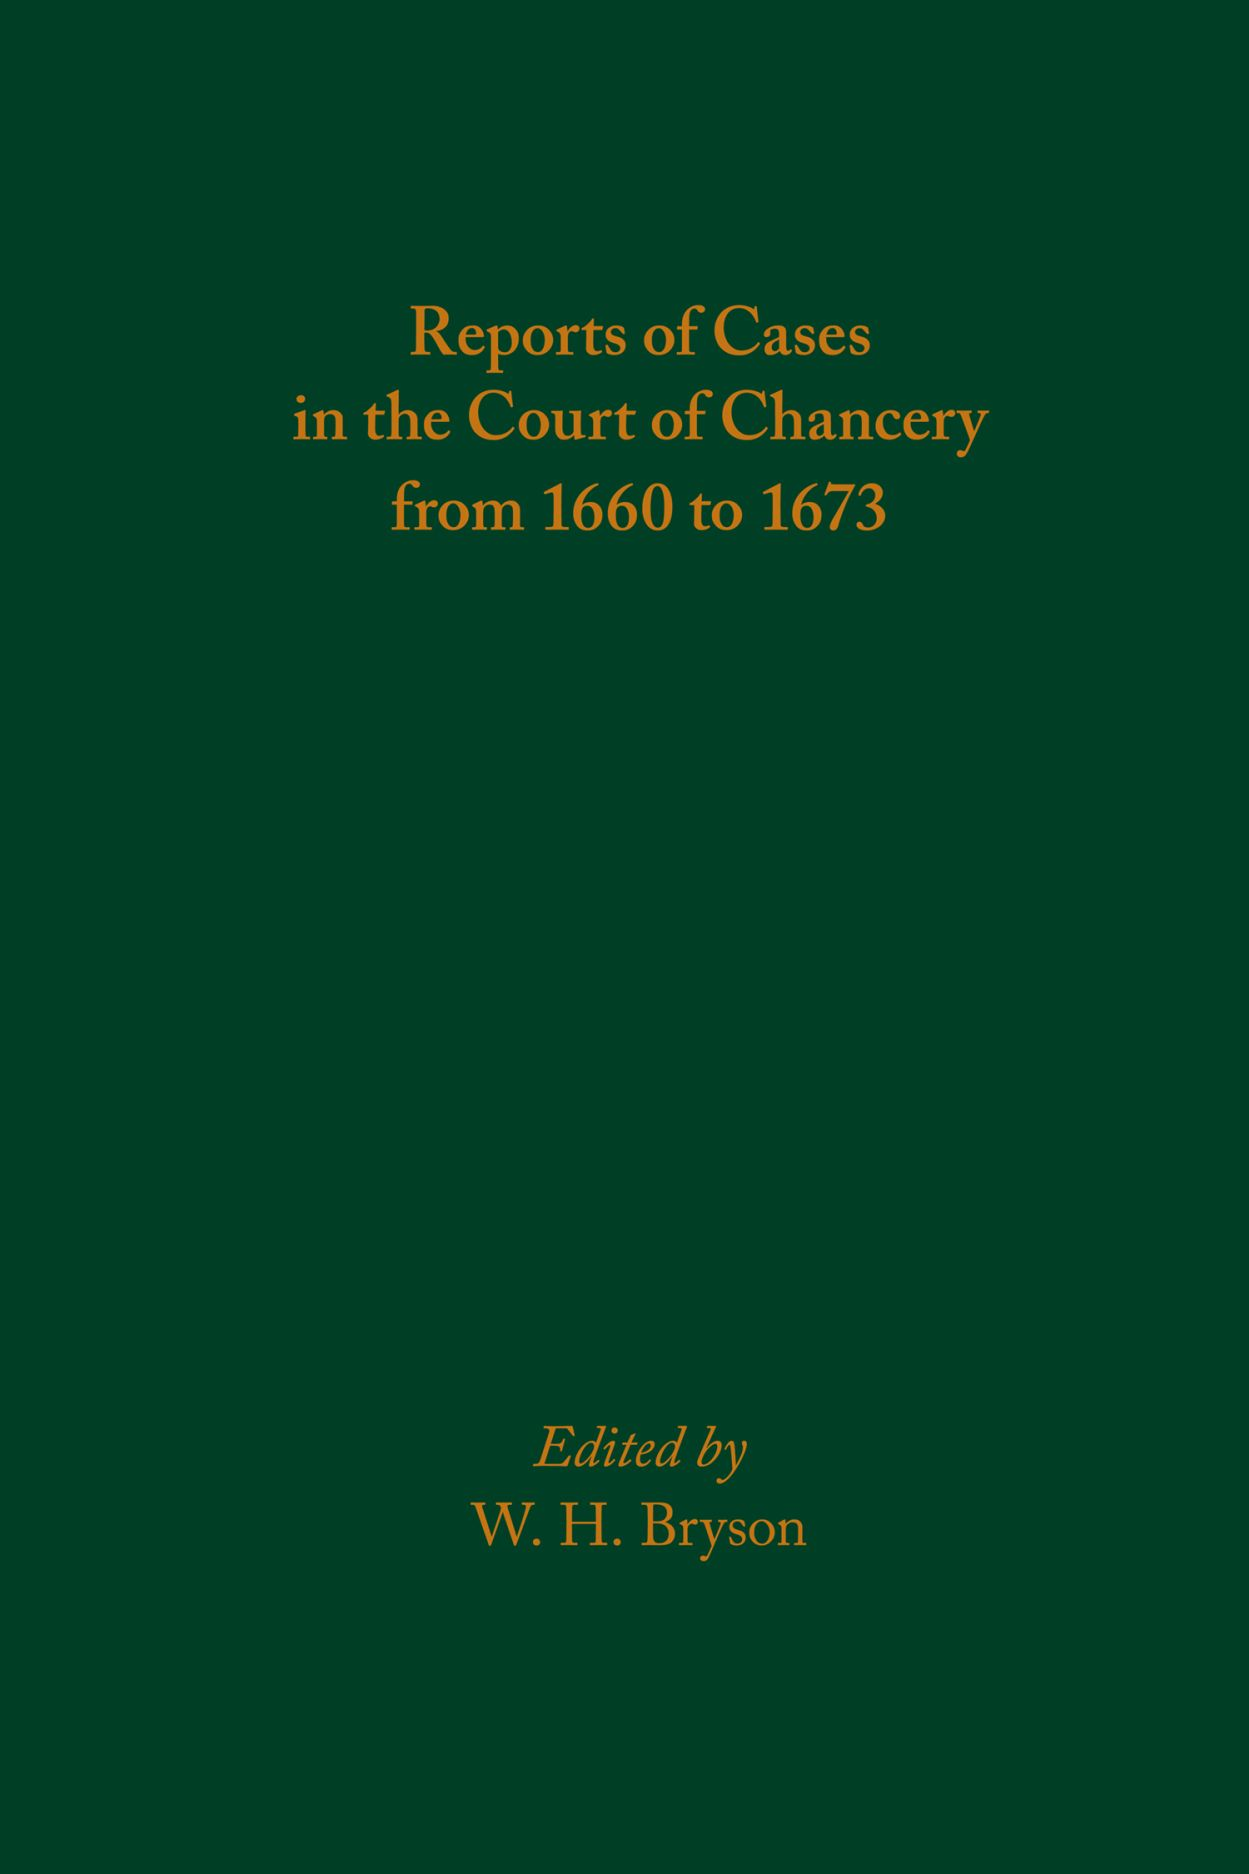 Reports of Cases in the Court of Chancery from 1660 to 1673